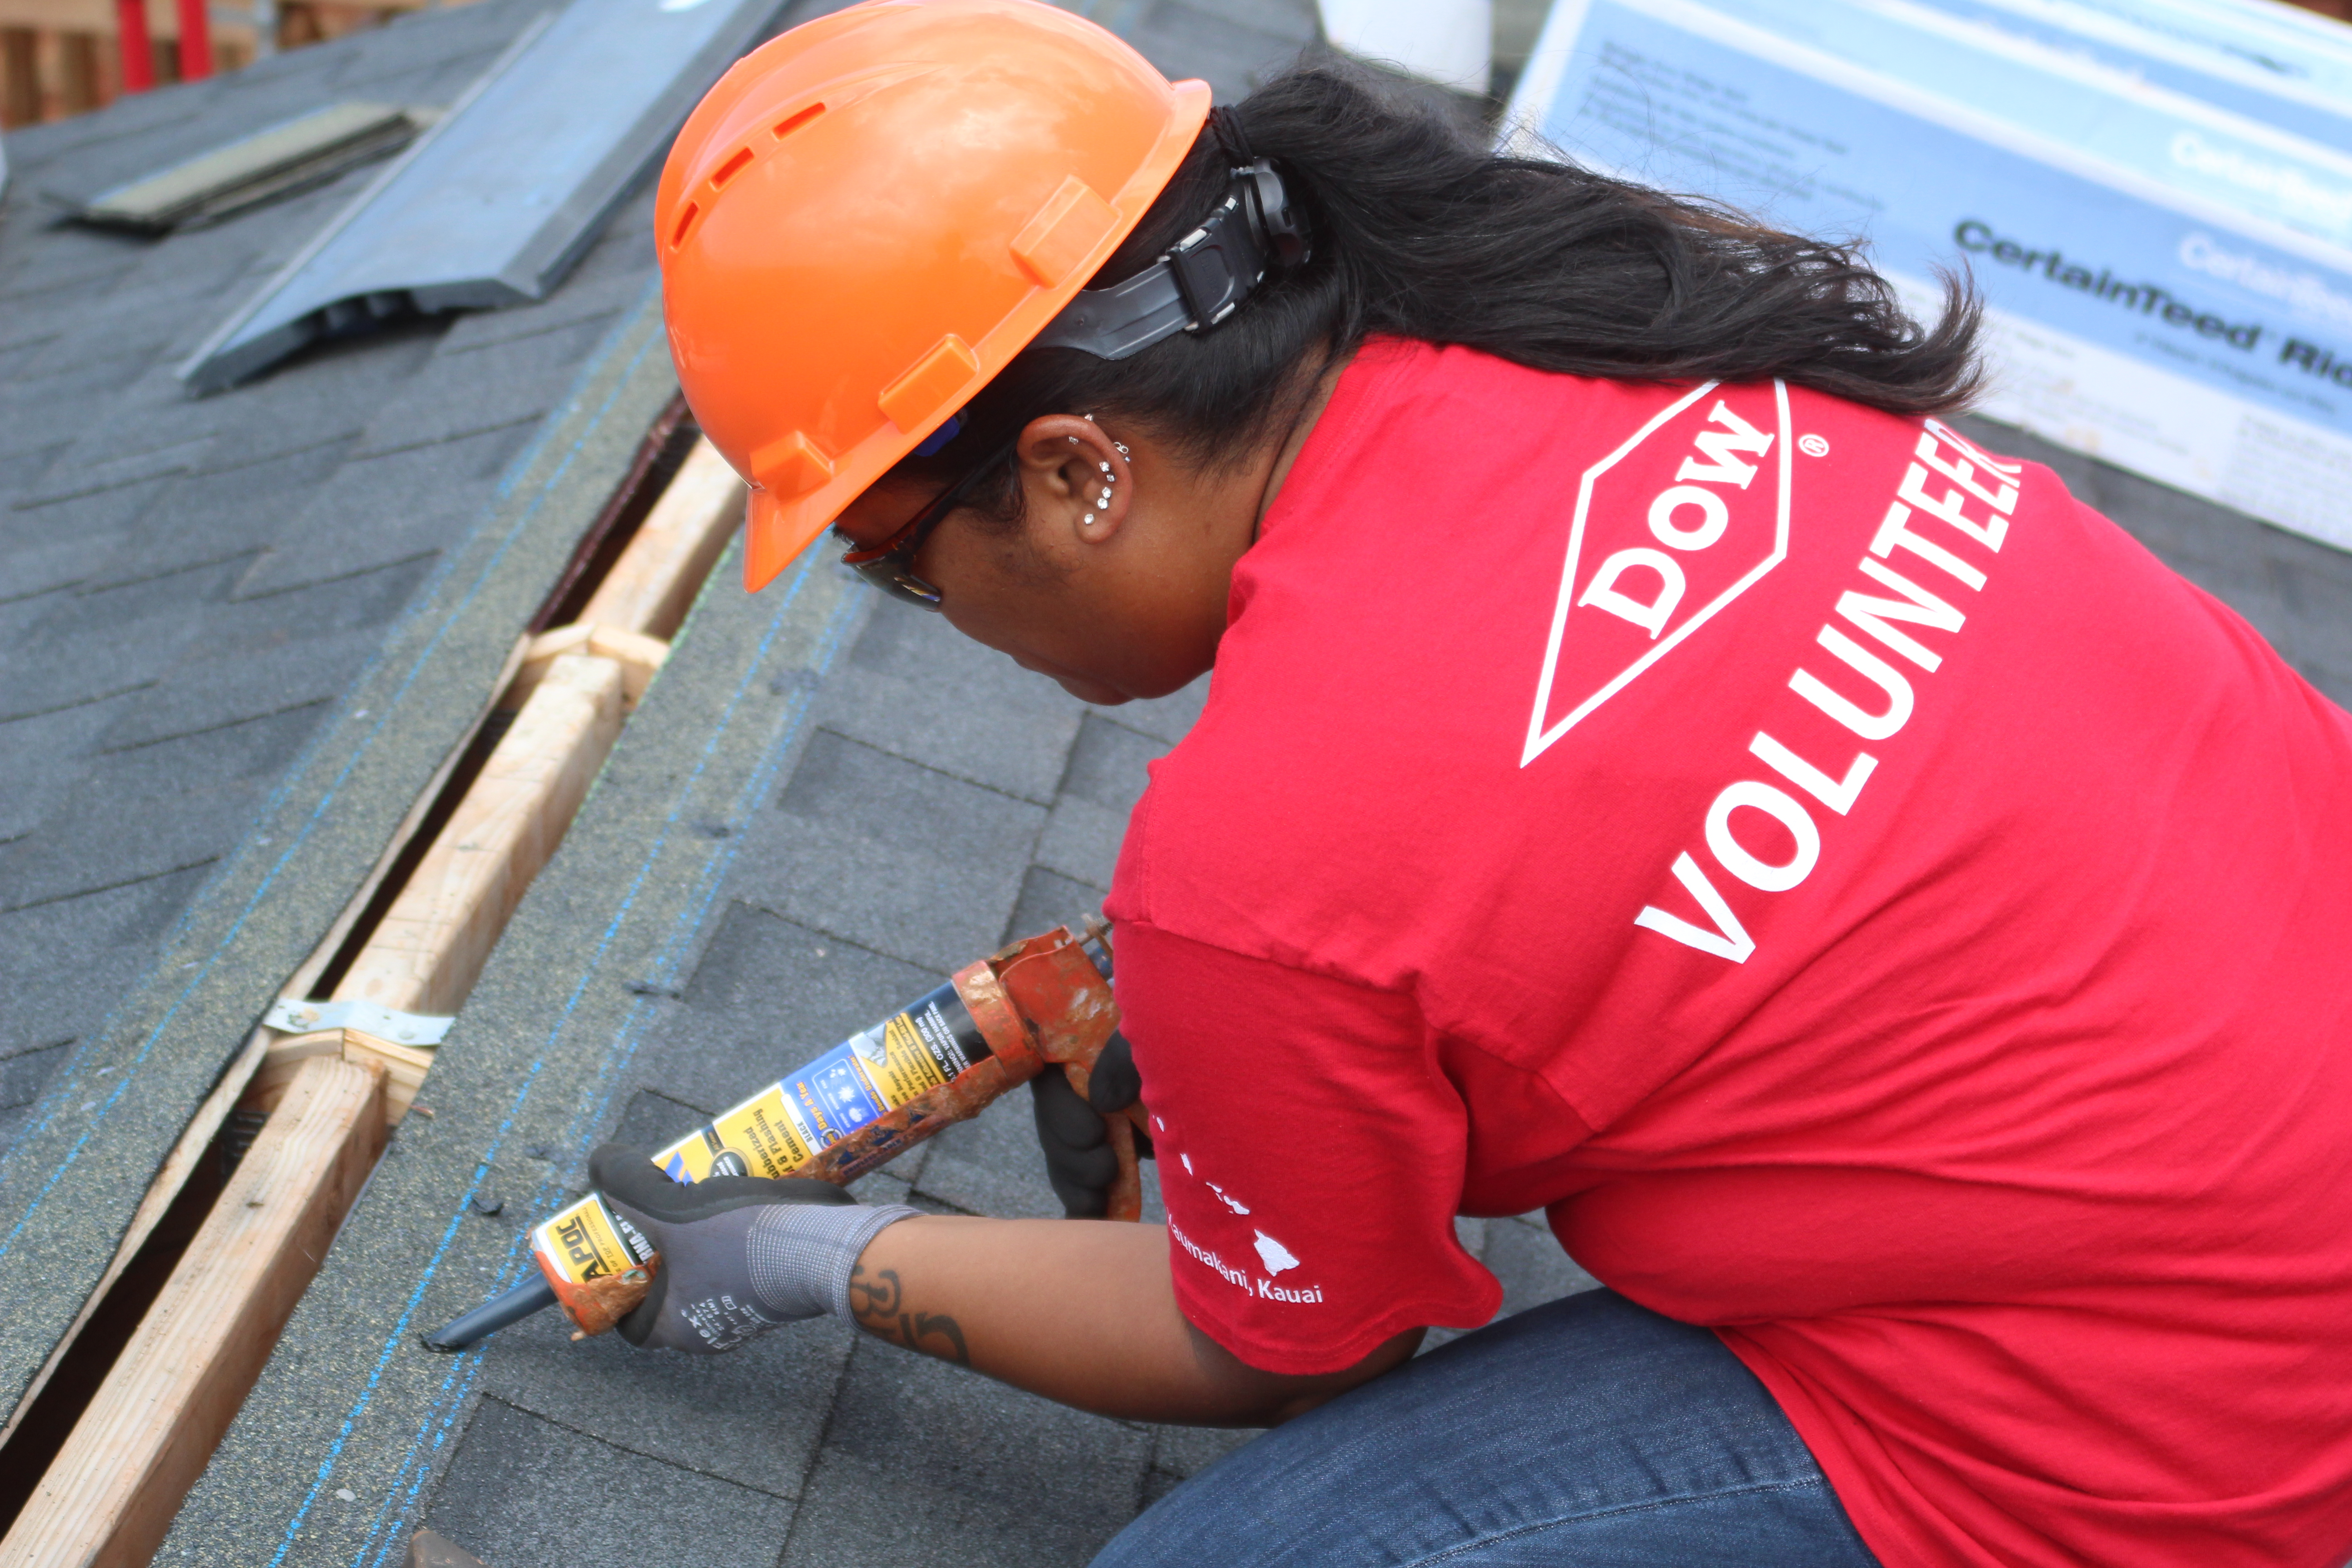 dow employee alicia vea applying roof sealant before installing